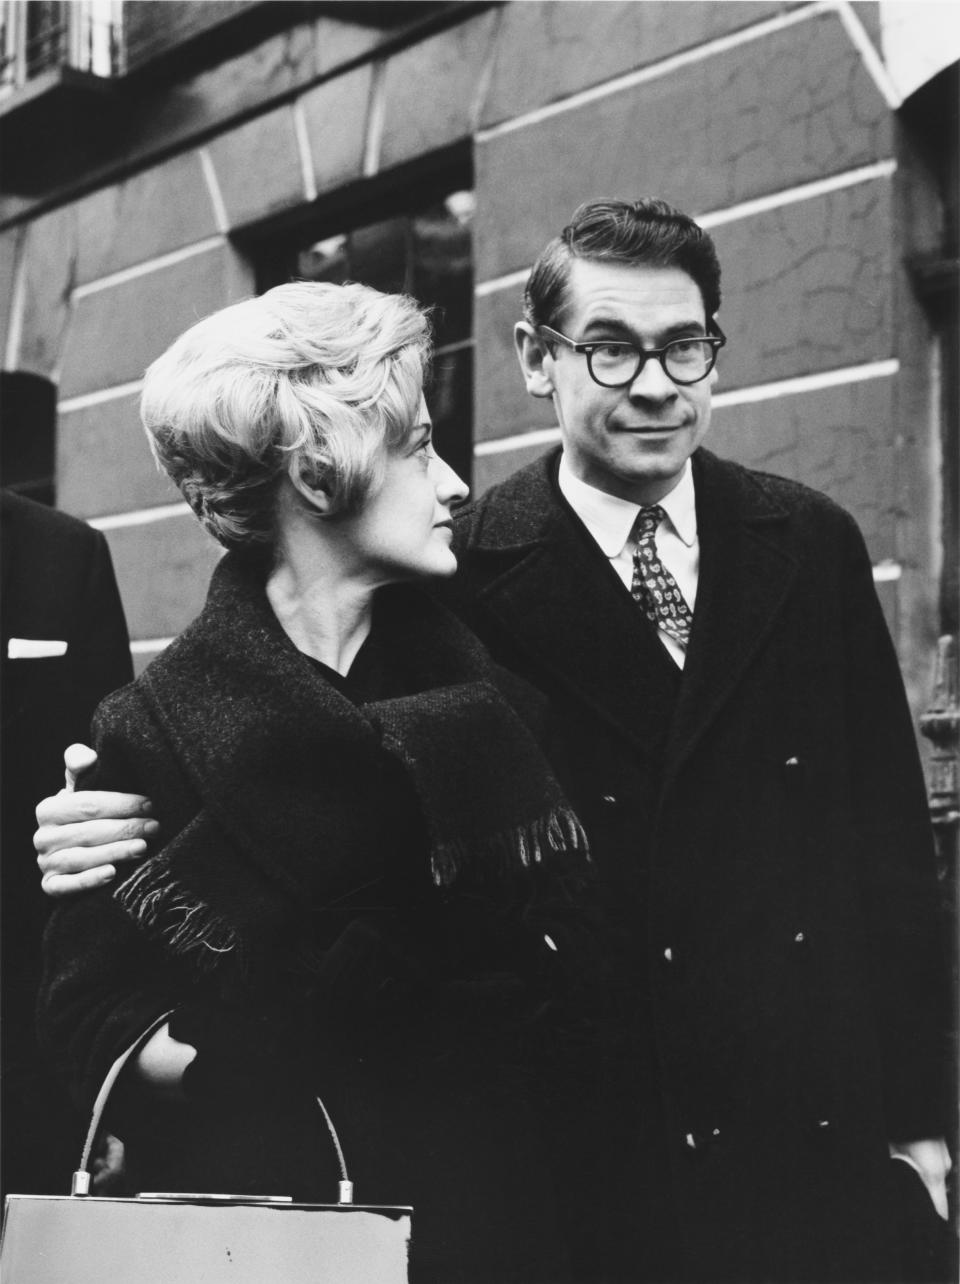 Scottish actor and comedian Stanley Baxter outside the Clerkenwell Magistrates Court in London with his wife Moira, after being cleared of an act of public indecency, 30th March 1962. (Photo by Evening Standard/Hulton Archive/Getty Images)